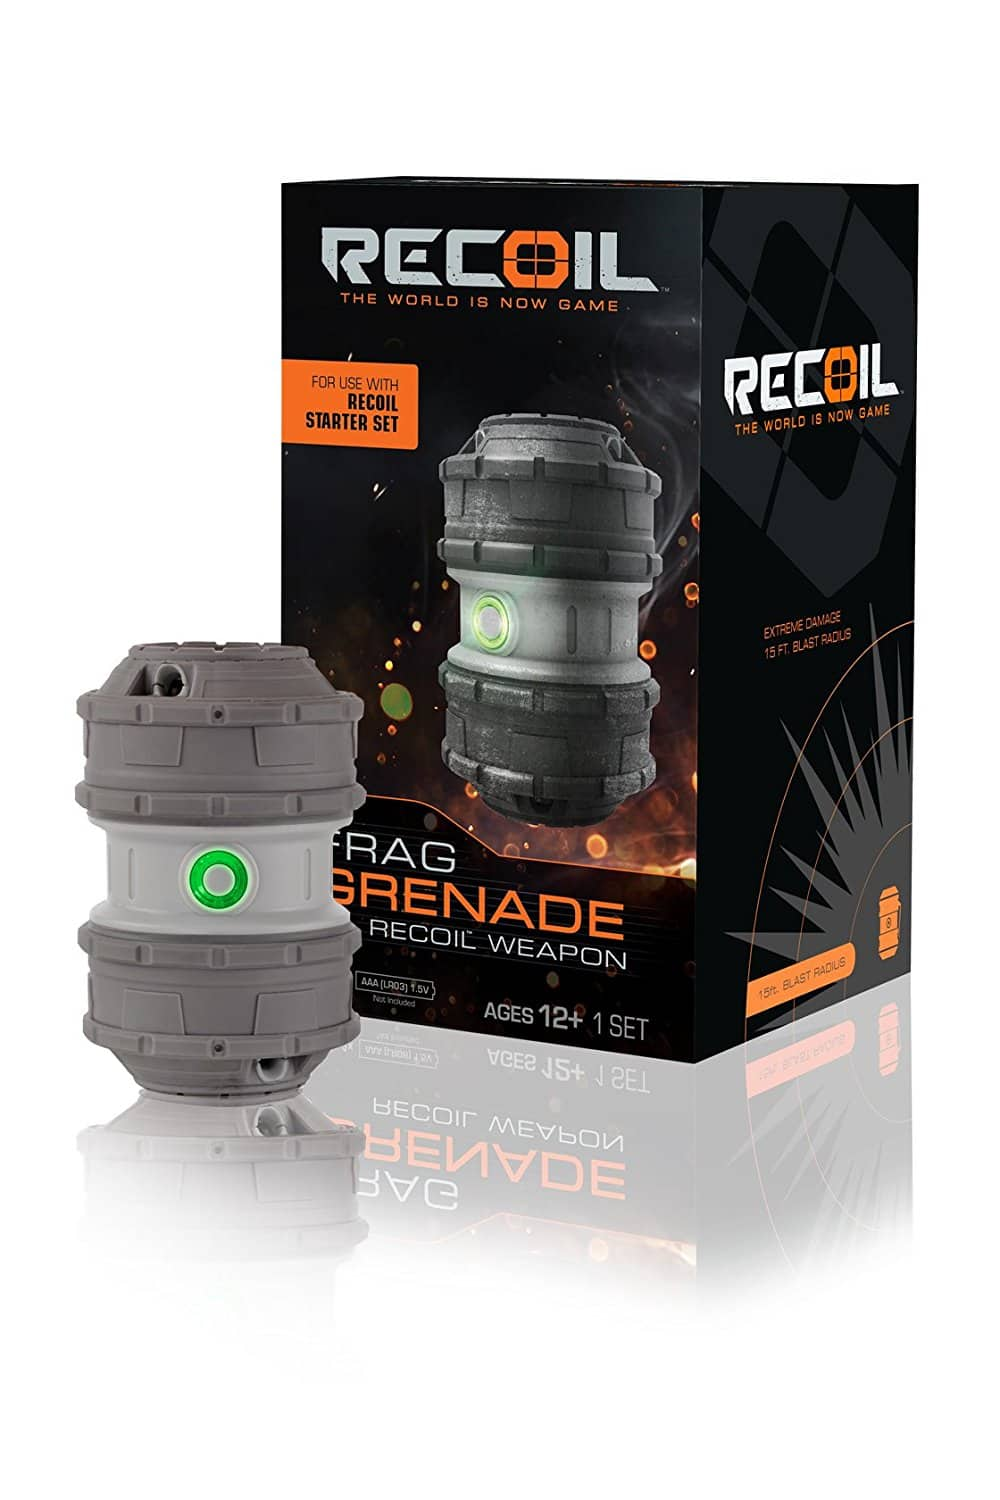 Recoil Laser Combat - Frag Grenade Amazon and Wal-Mart $9.57